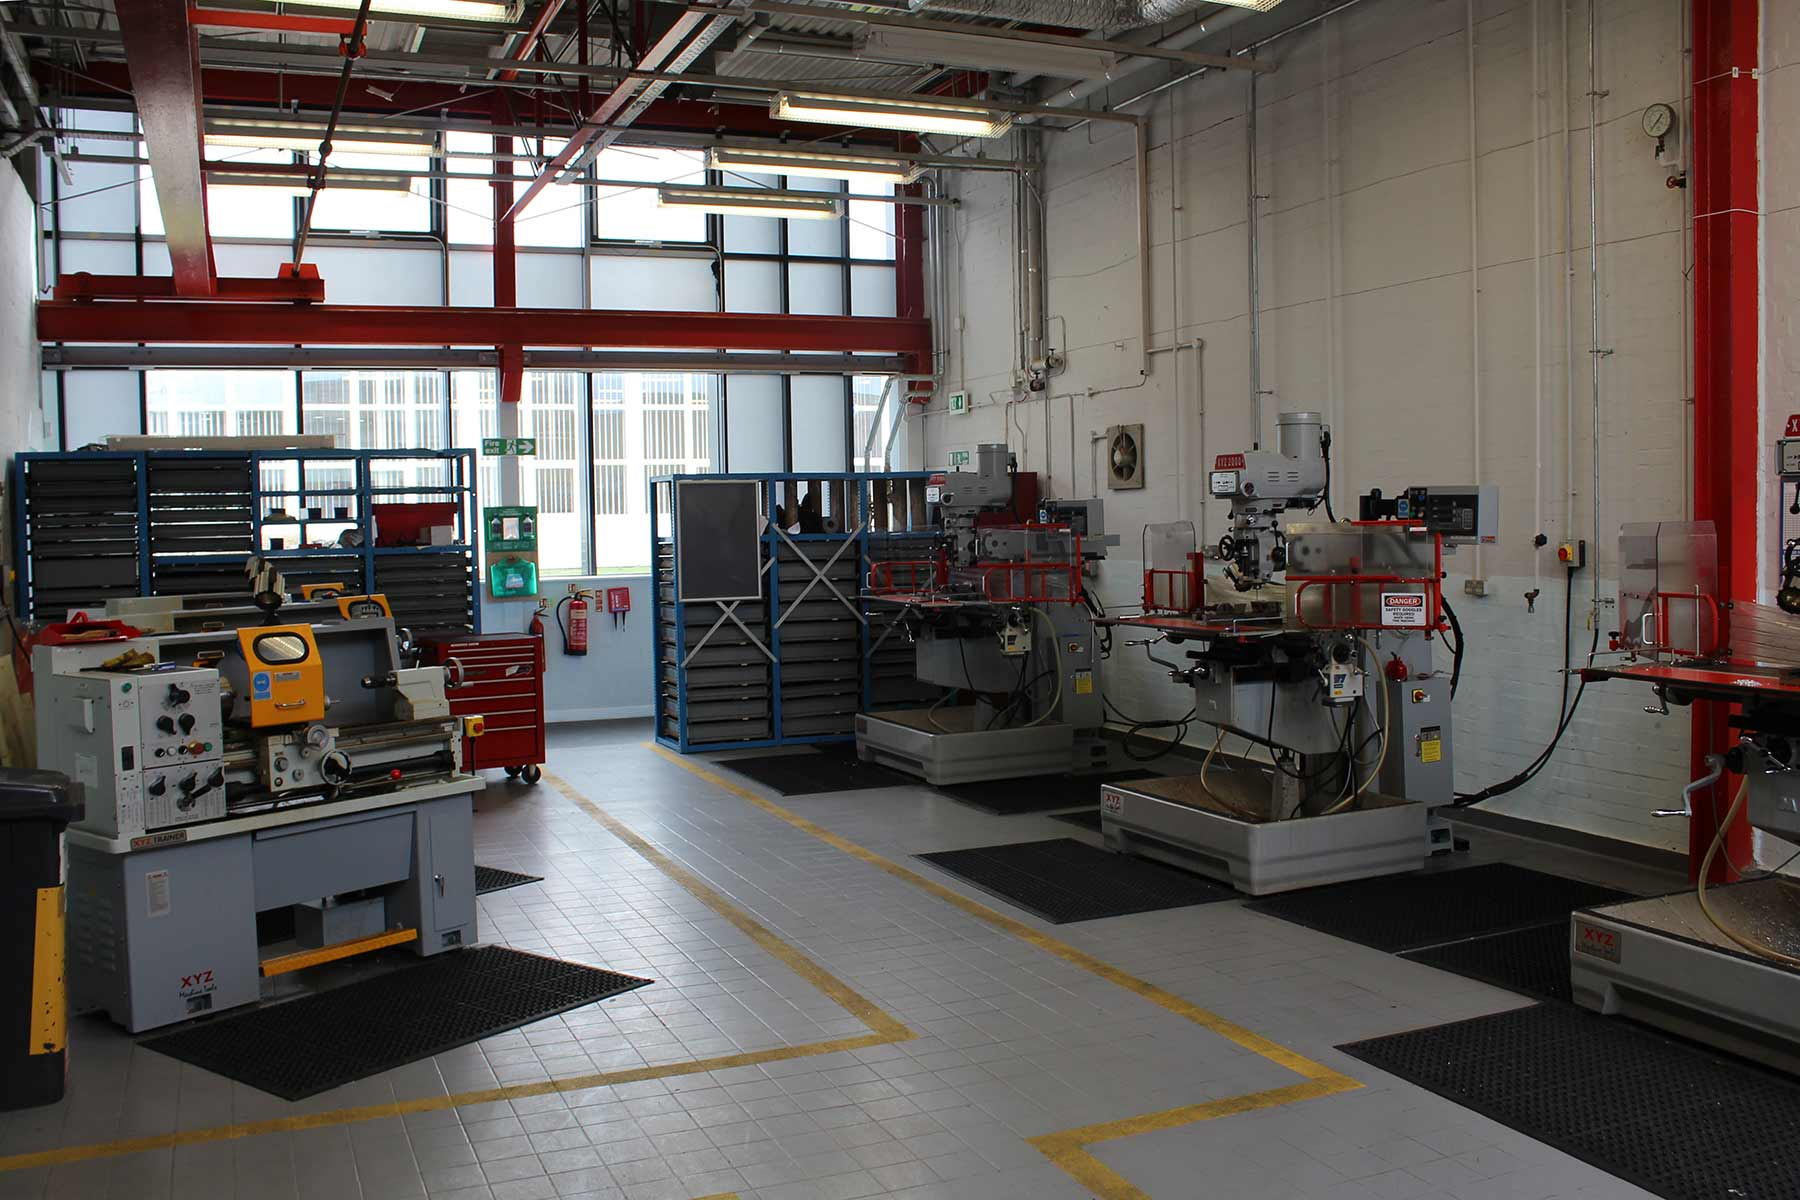 The Mechanical Workshop at Thornton